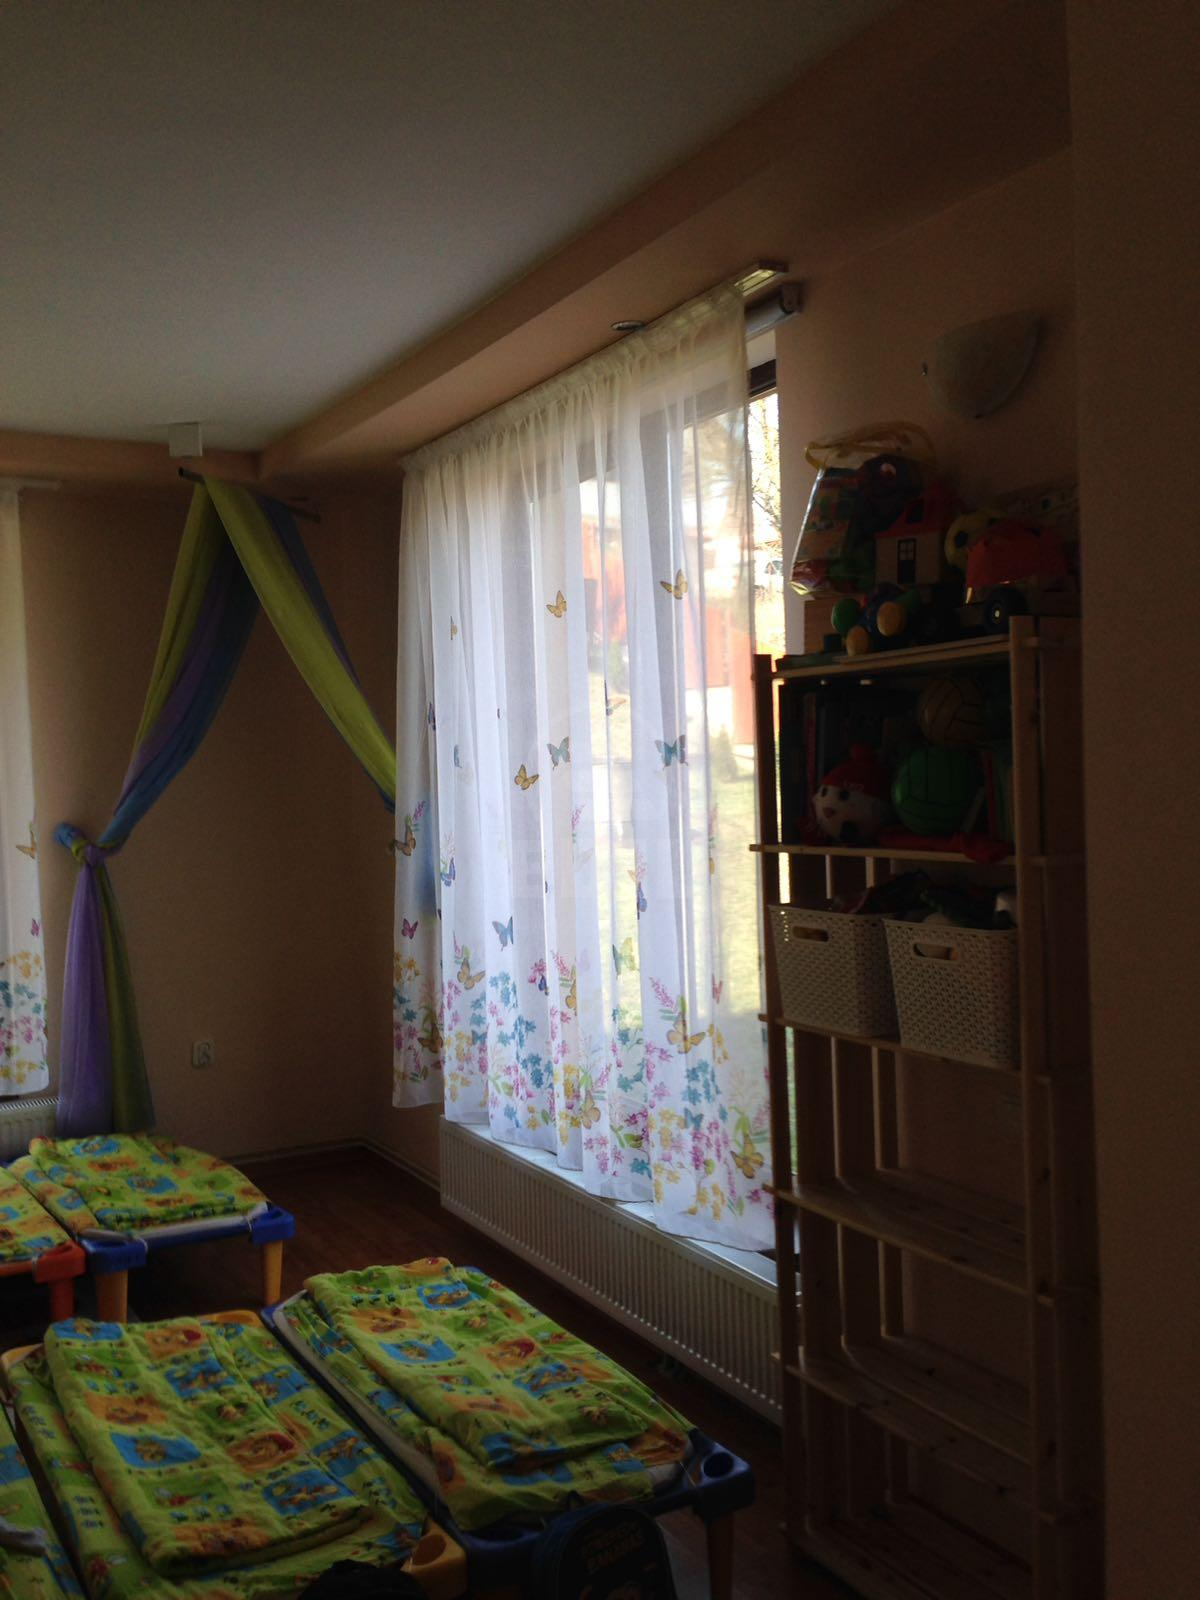 House for rent 6 rooms, CACJ153642FLO-6